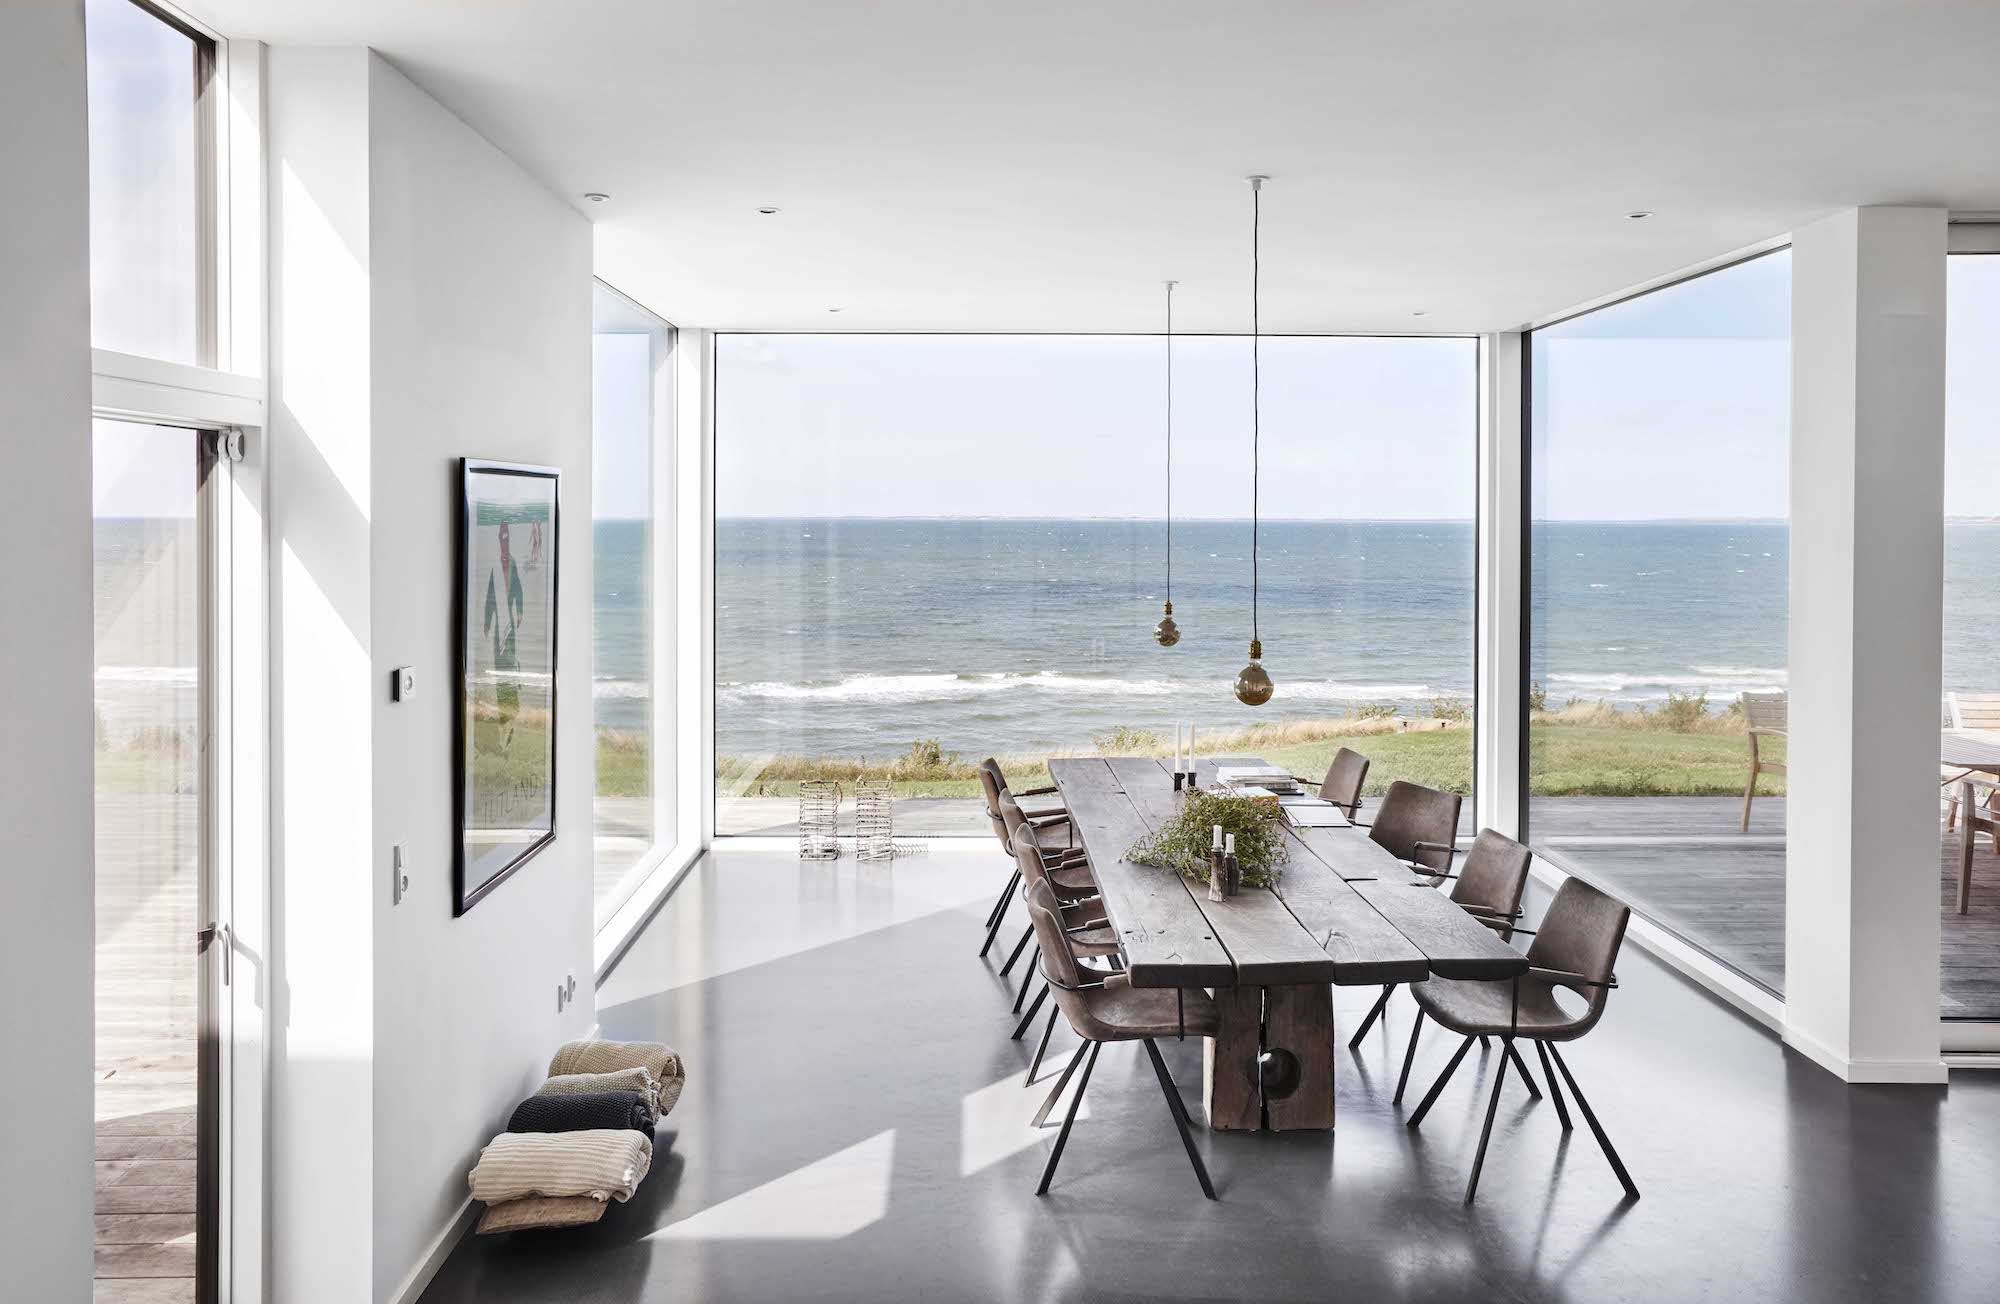 wooden dining table with large windows to see the sea view